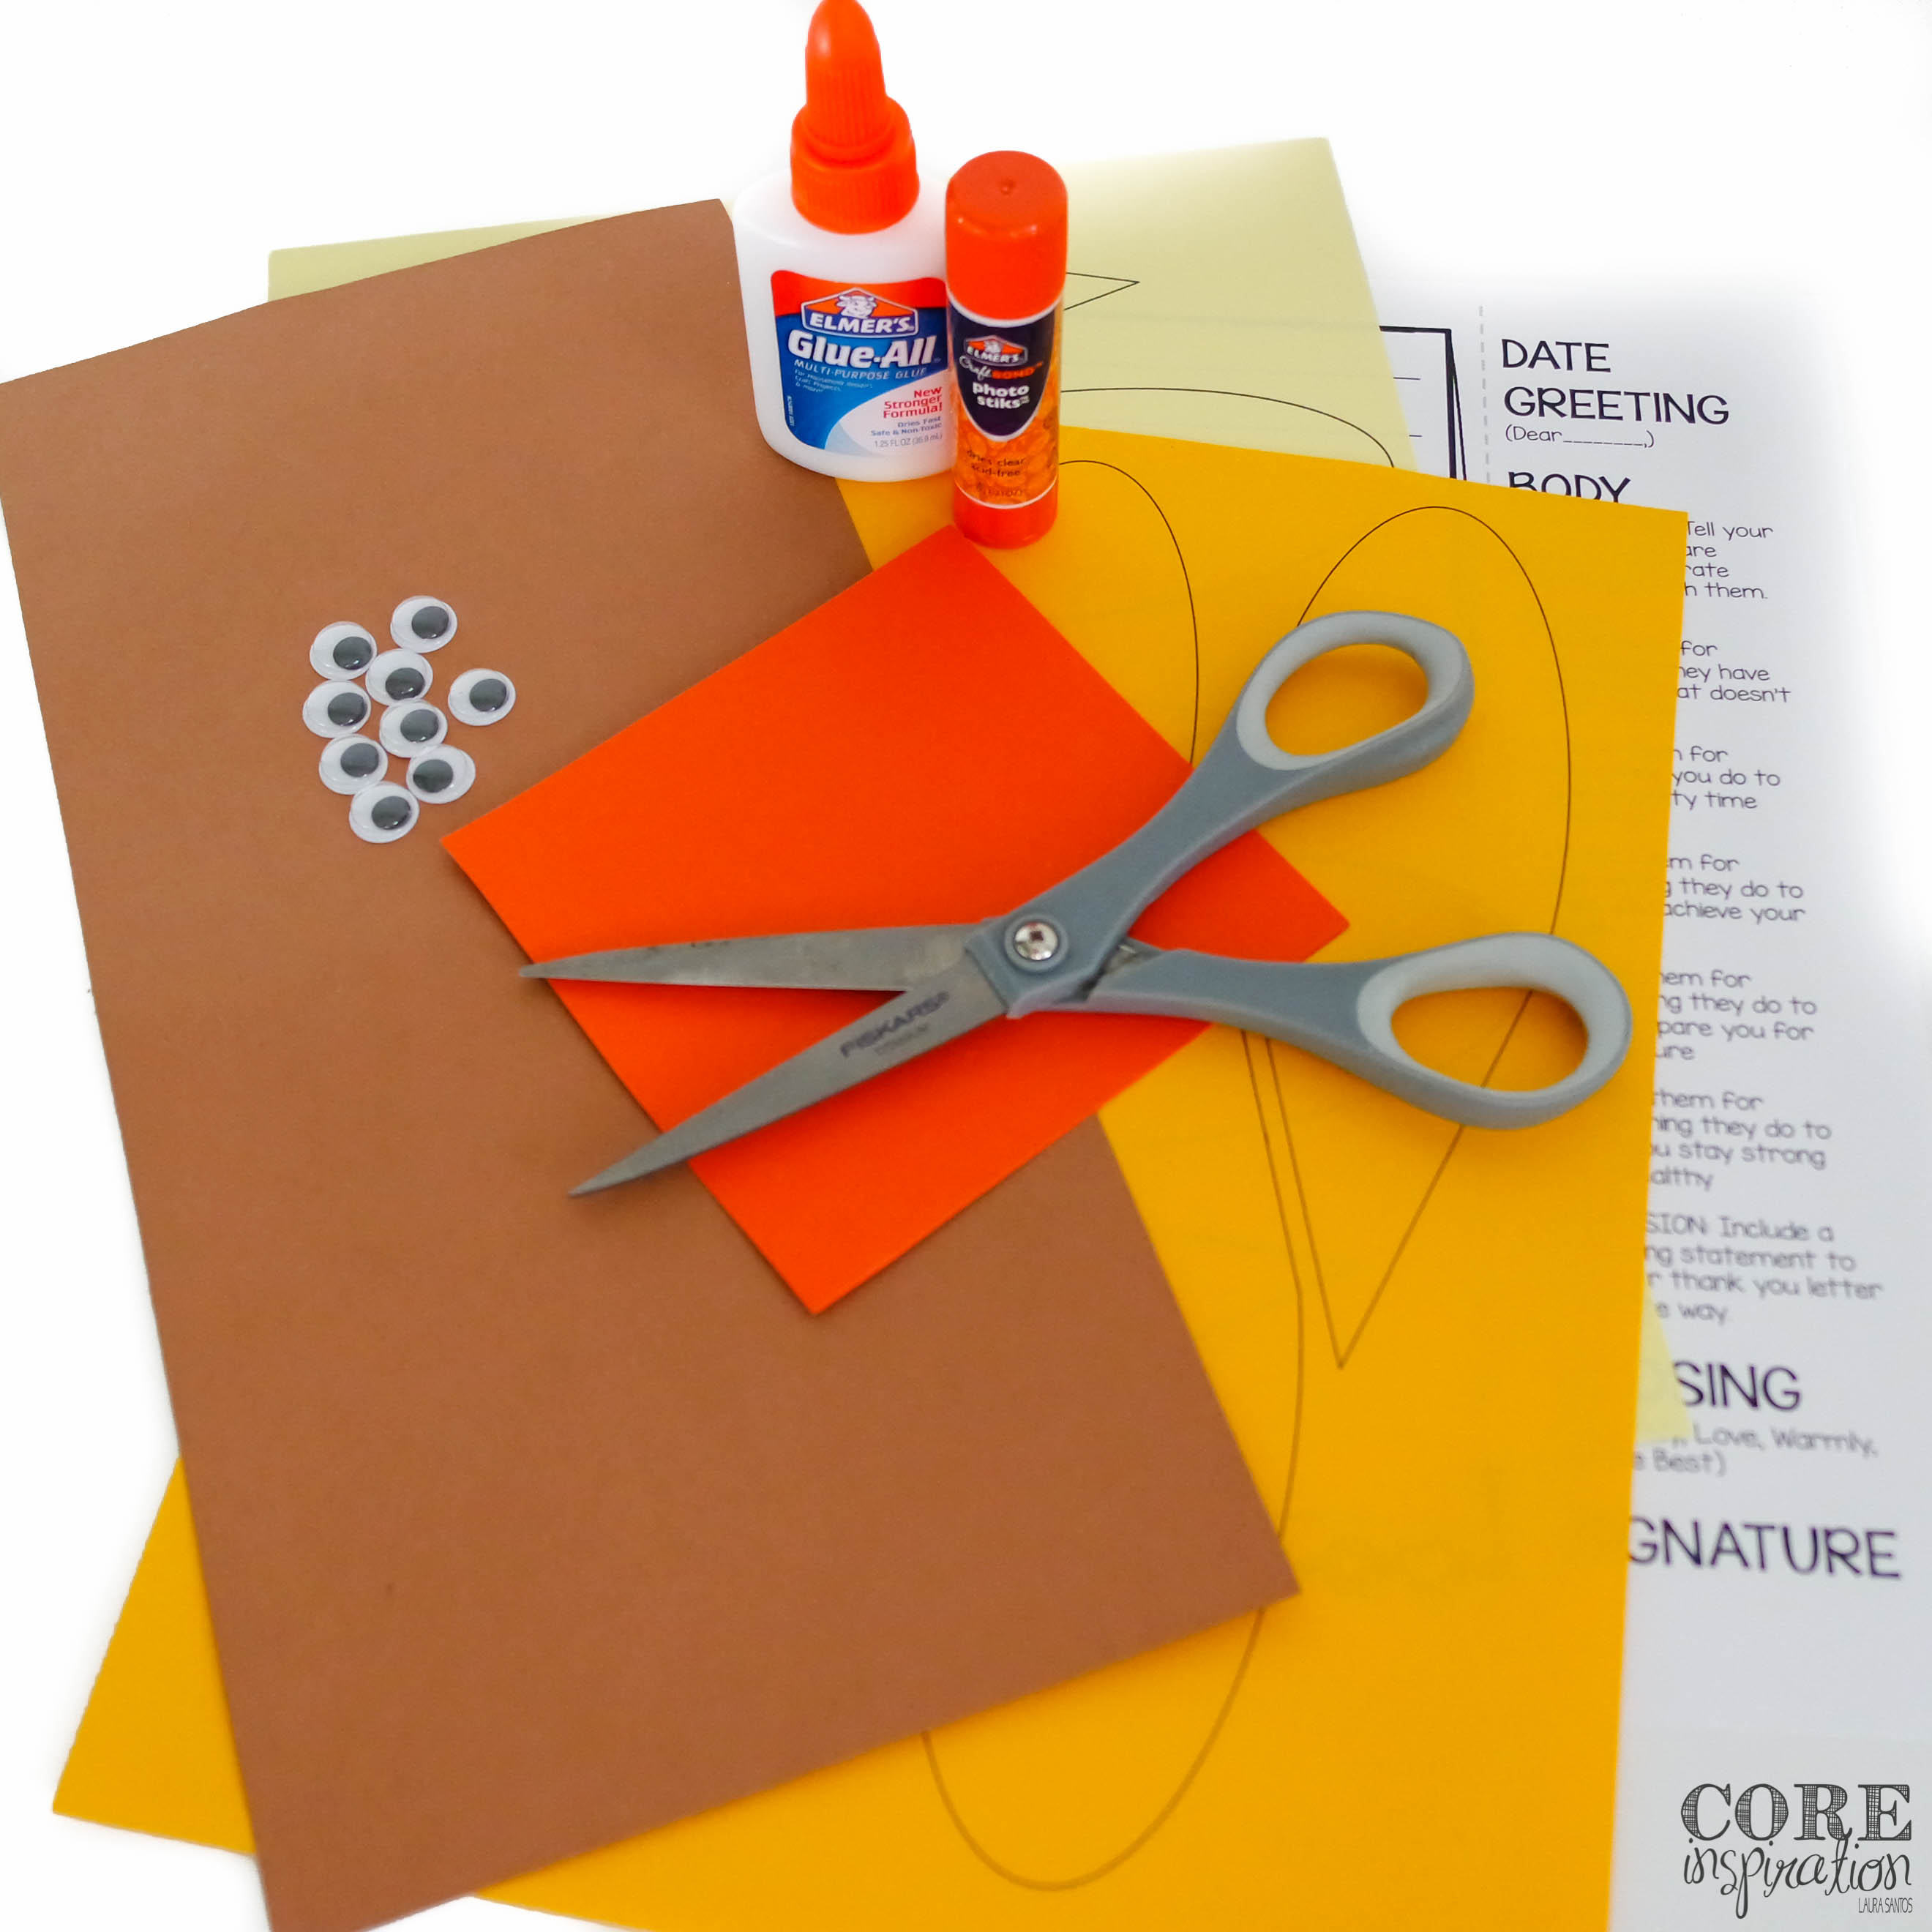 Supplies needed for letters of thanks craftivity - construction paoer, glue, scissors, googley eyes